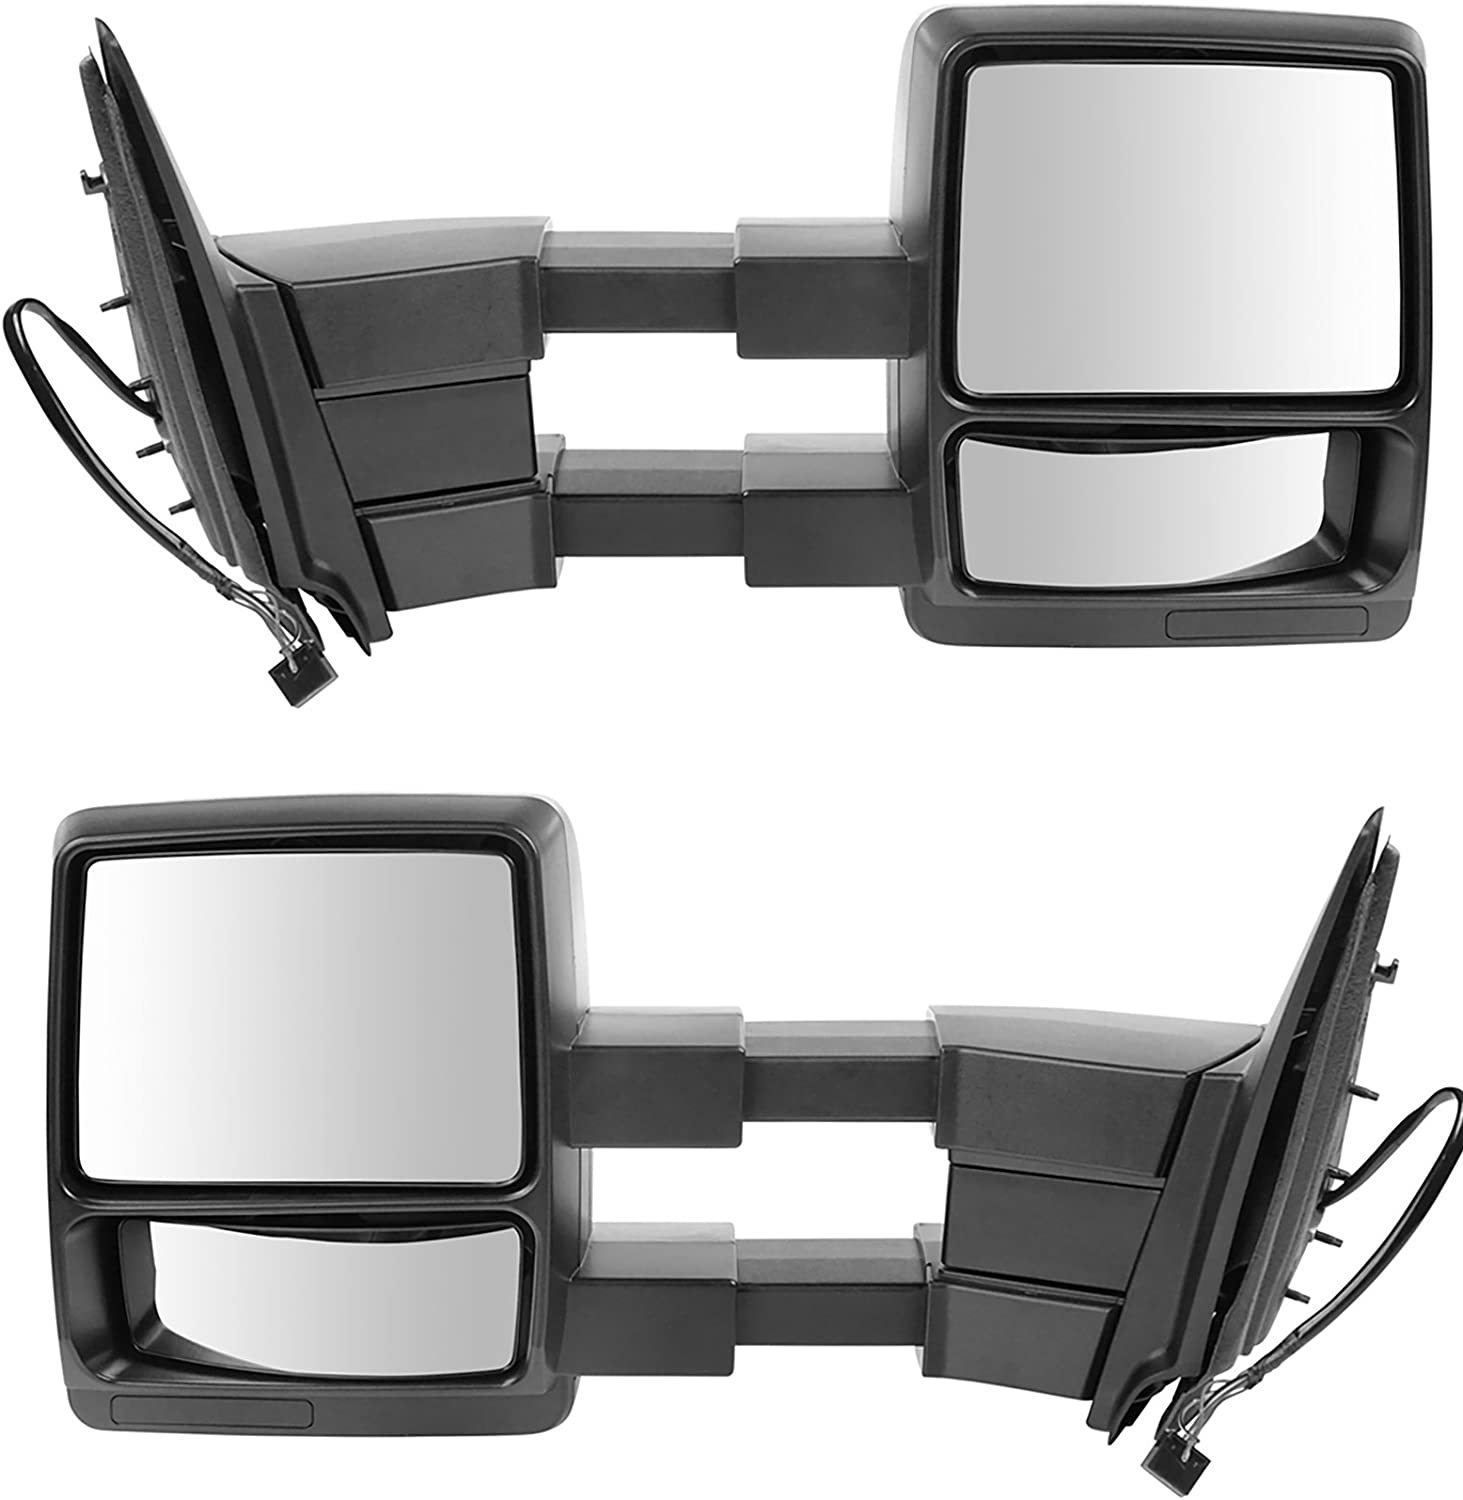 Trail Ridge Tow Mirror Power Heated Puddle Textured Black Pair for Expedition